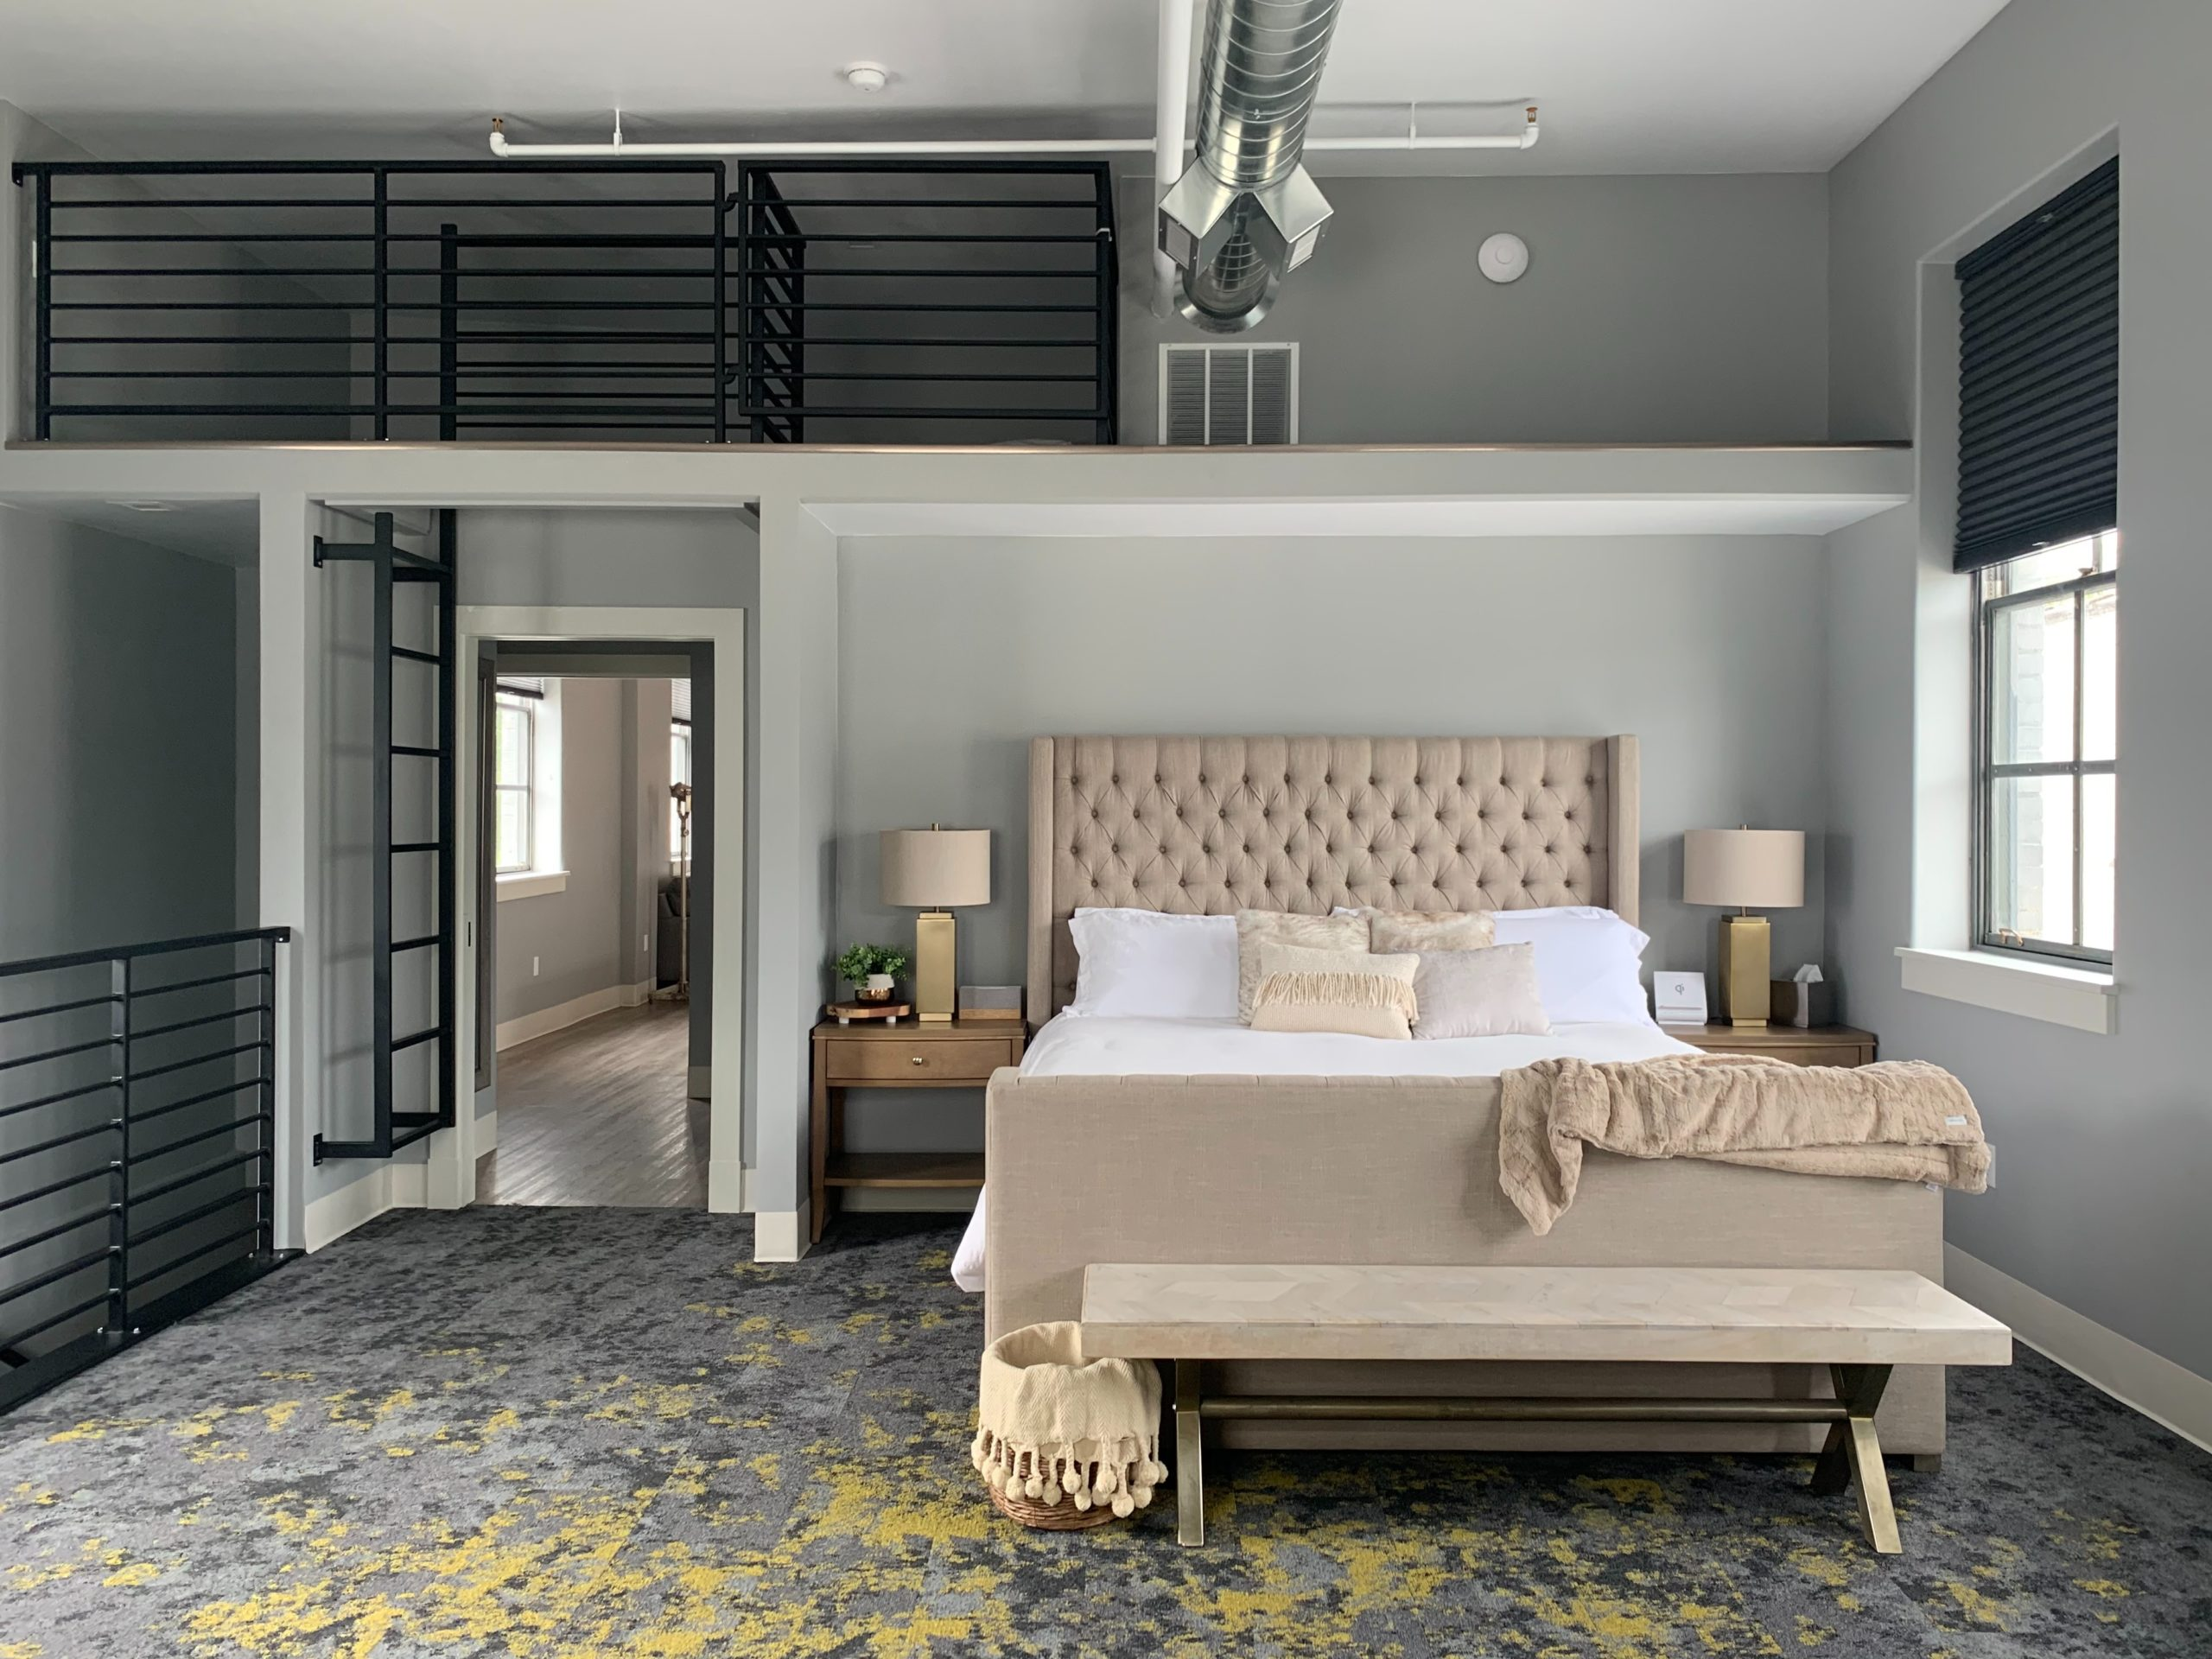 Modern Bedroom with Grey Walls and Door